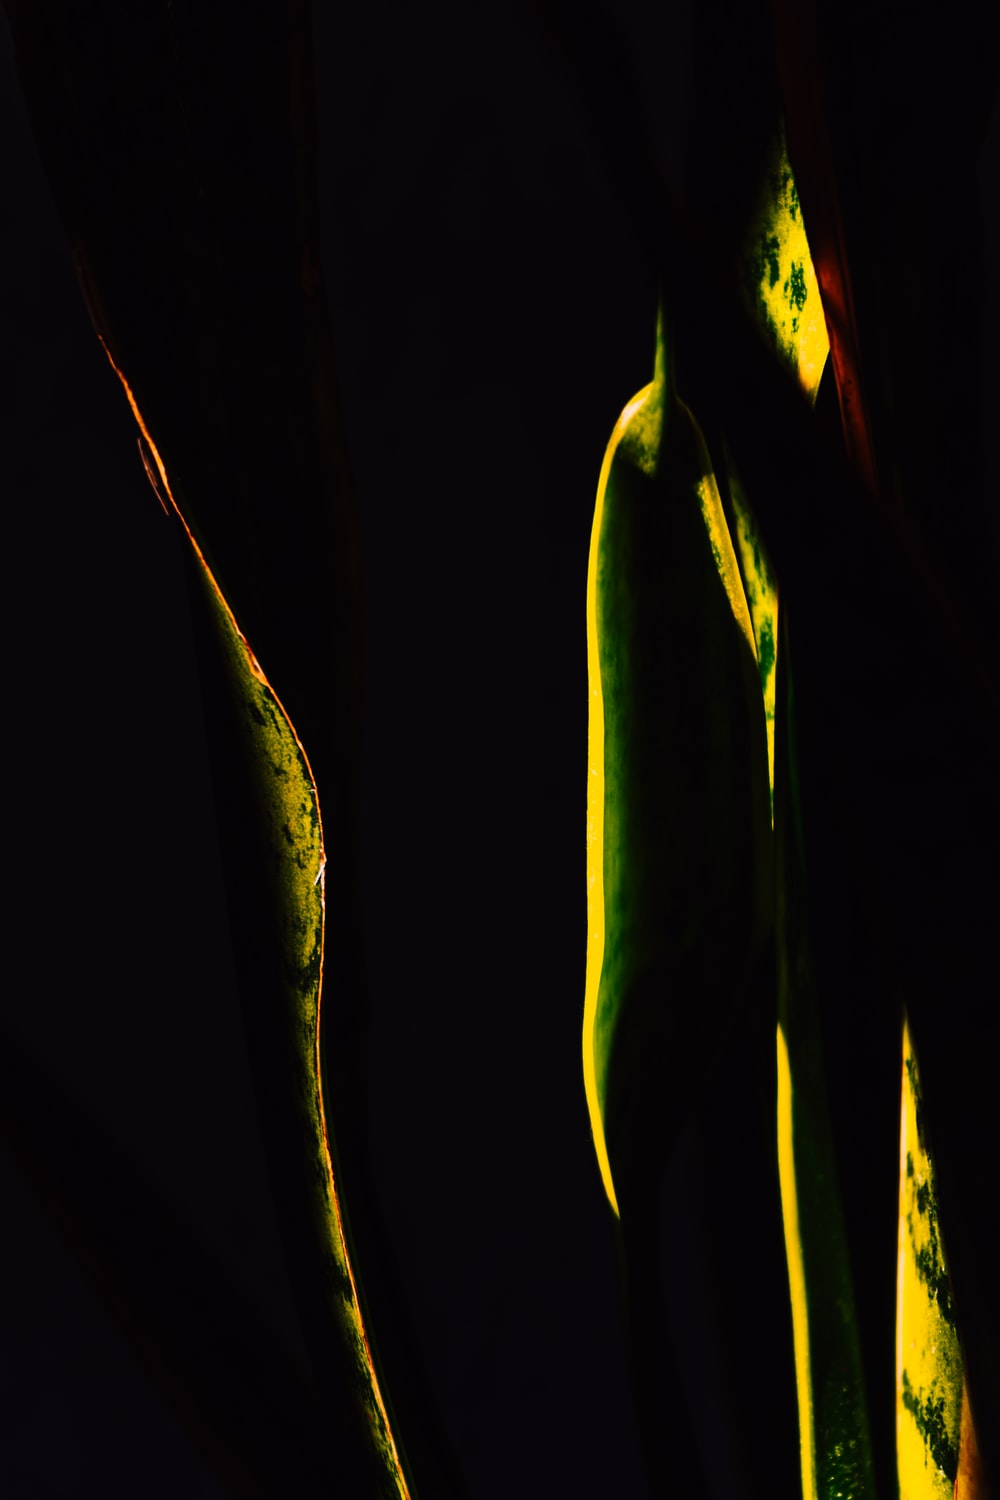 yellow and green abstract painting